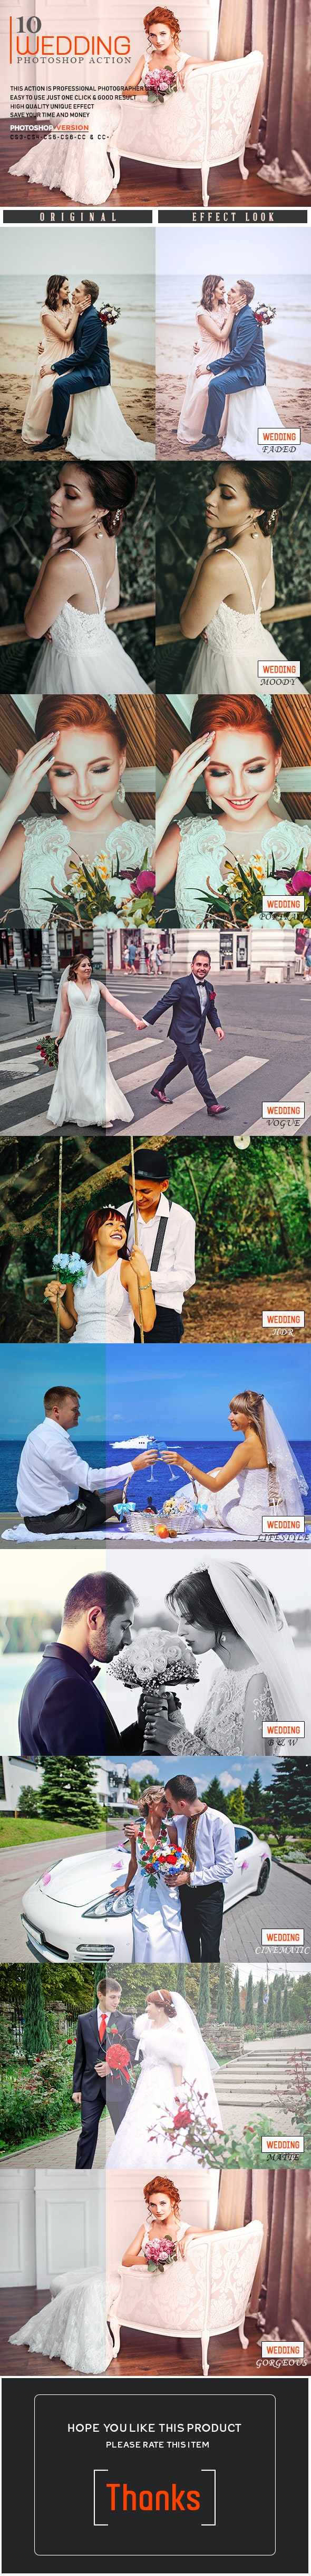 10 Wedding Photoshop Action - Photo Effects Actions